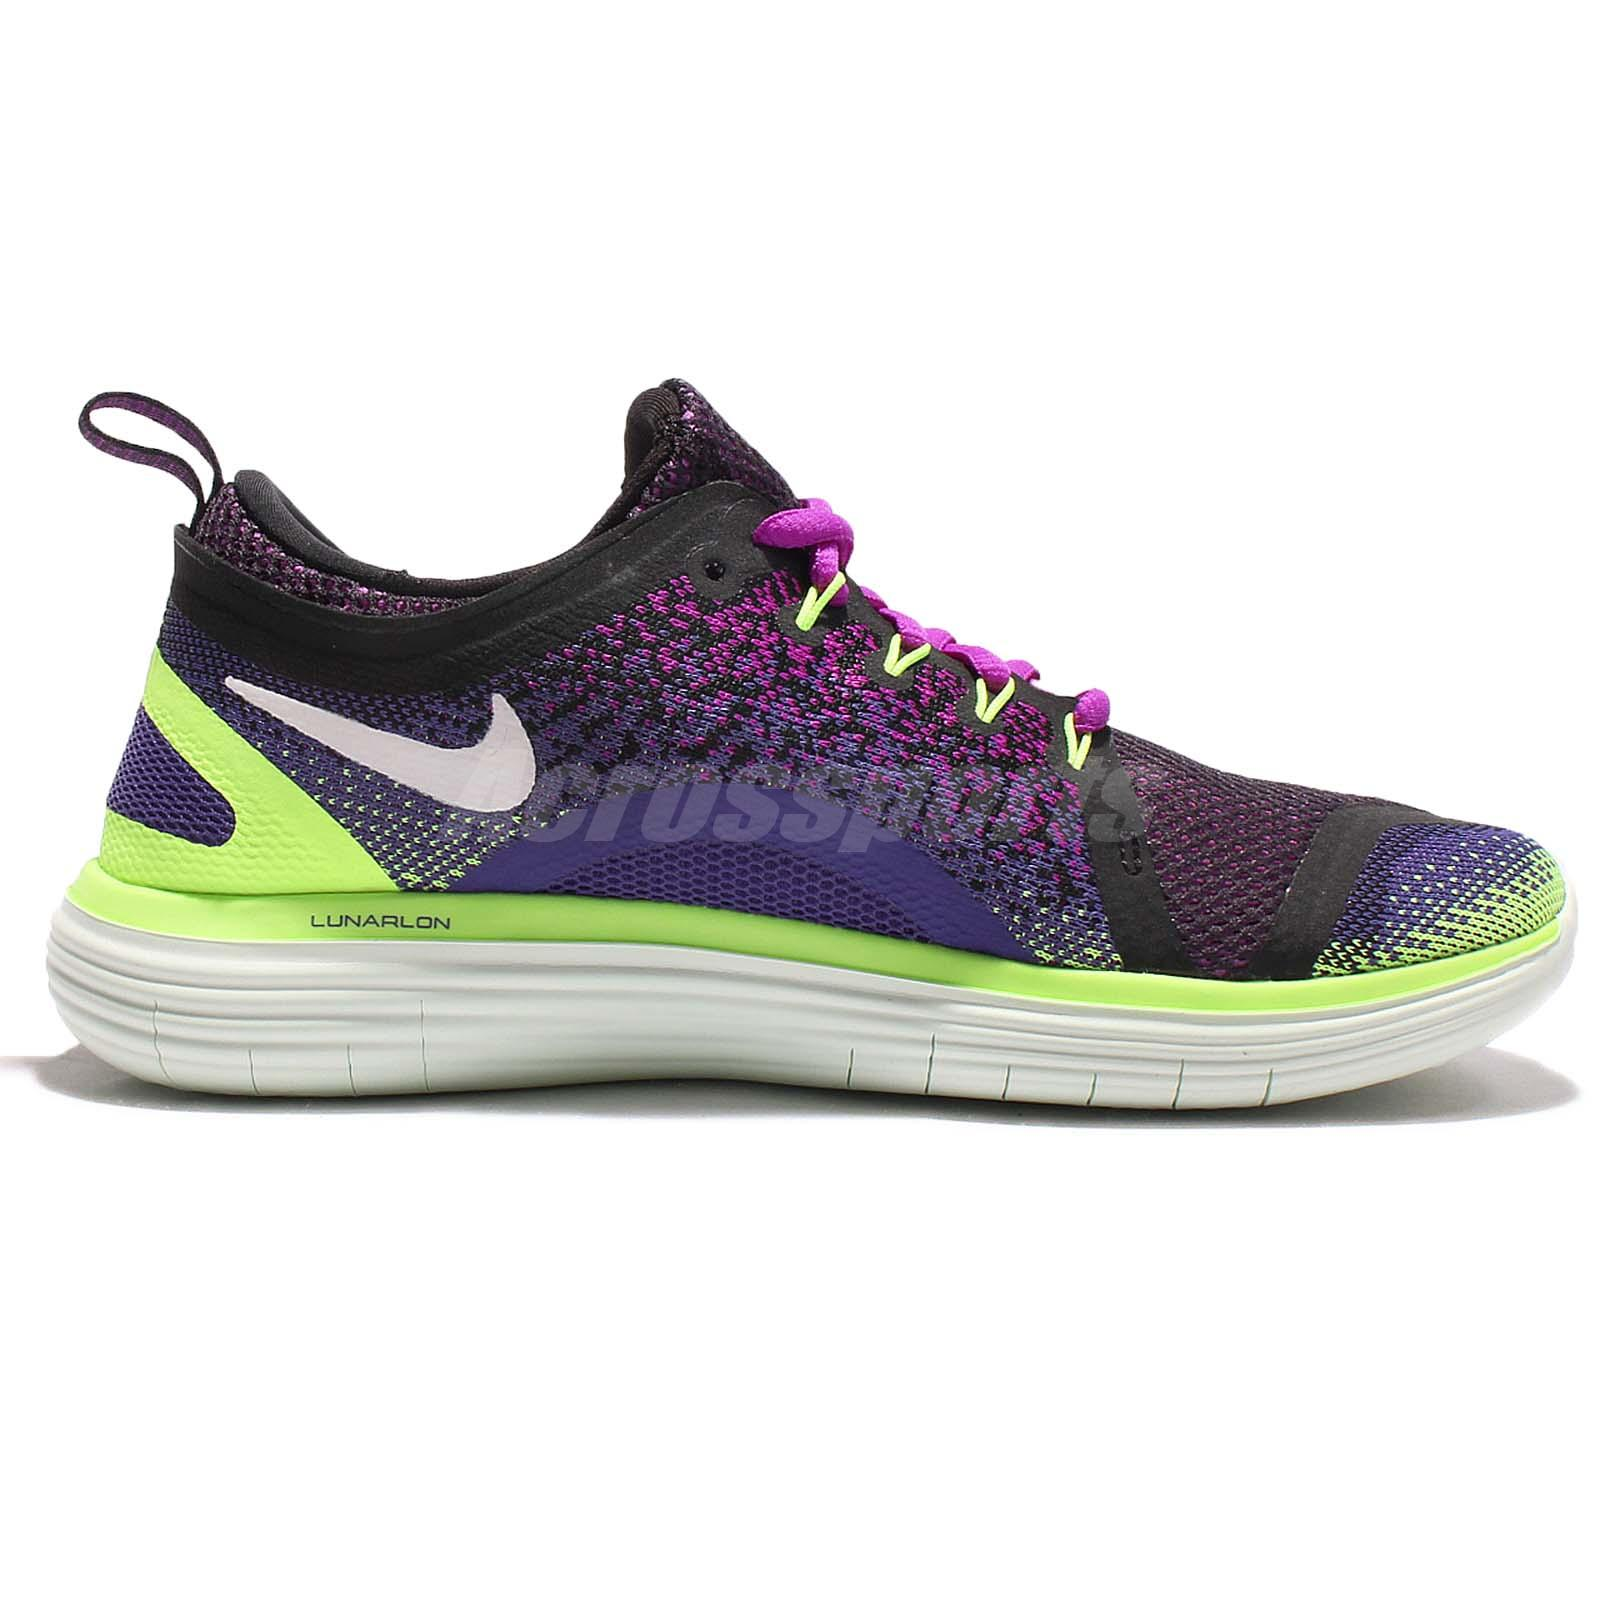 le dernier c1dd5 8e651 Details about Nike Wmns Free RN Distance 2 II Run Purple Green Women  Running Shoes 863776-501